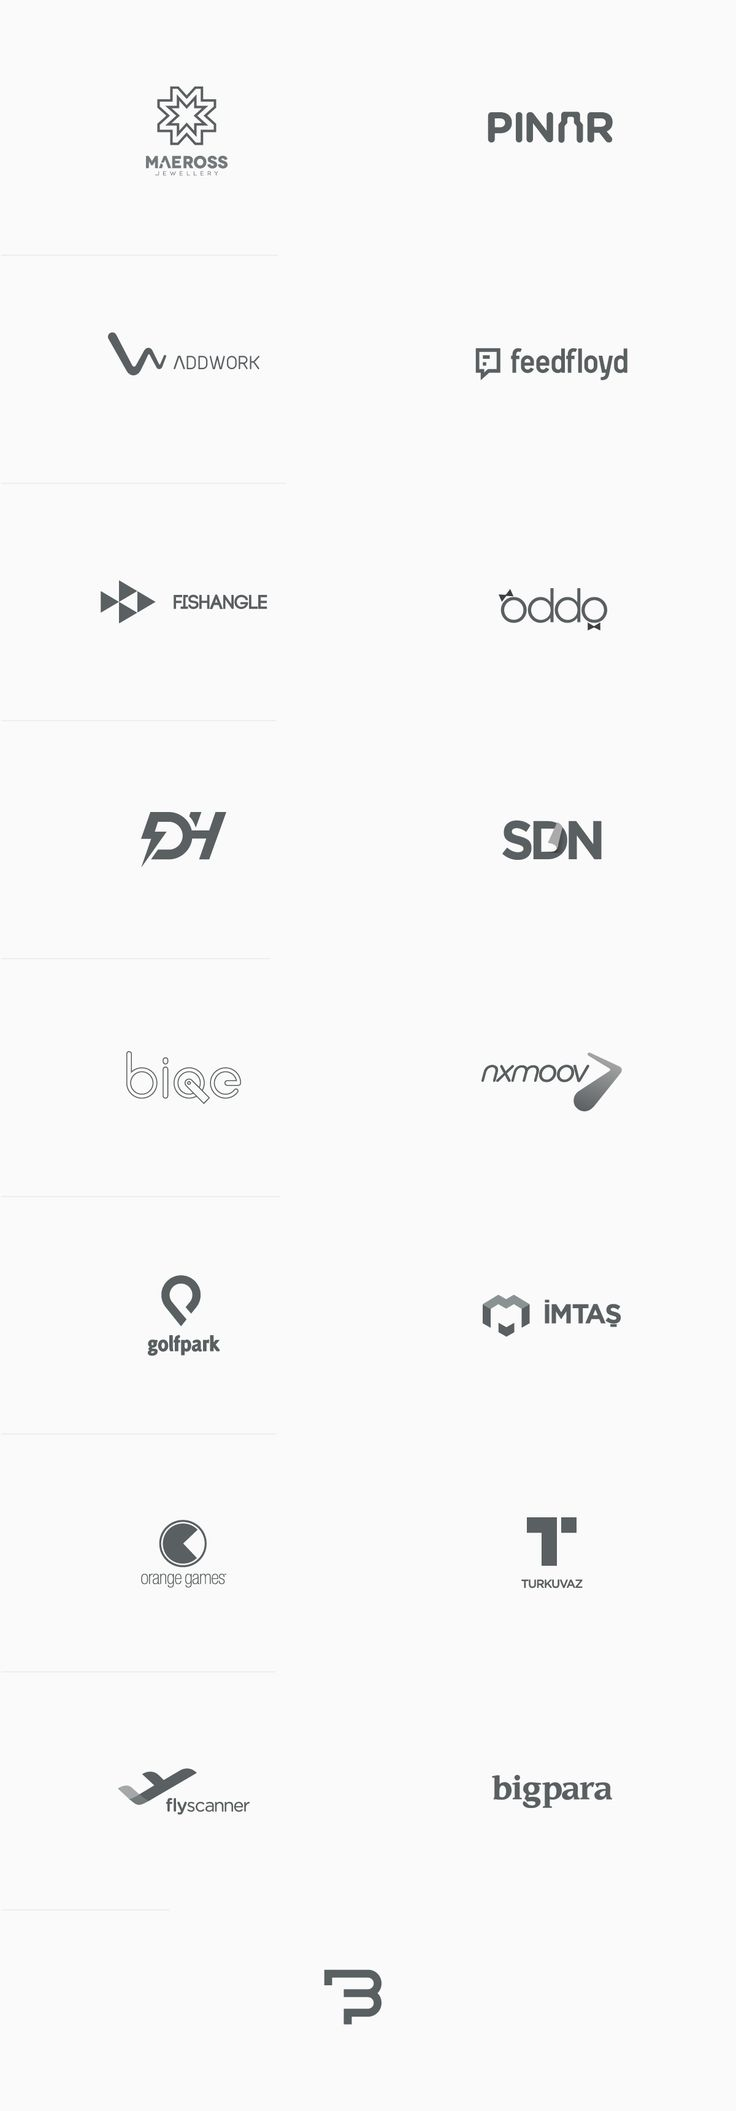 Logo collection from 2014 by Fatih Bektaş, a graphic designer based in Istanbul, Turkey. The logos were created for a variety of branding and graphic design projects. Fatih Bektaş' collection includes different graphics and custom letterings.